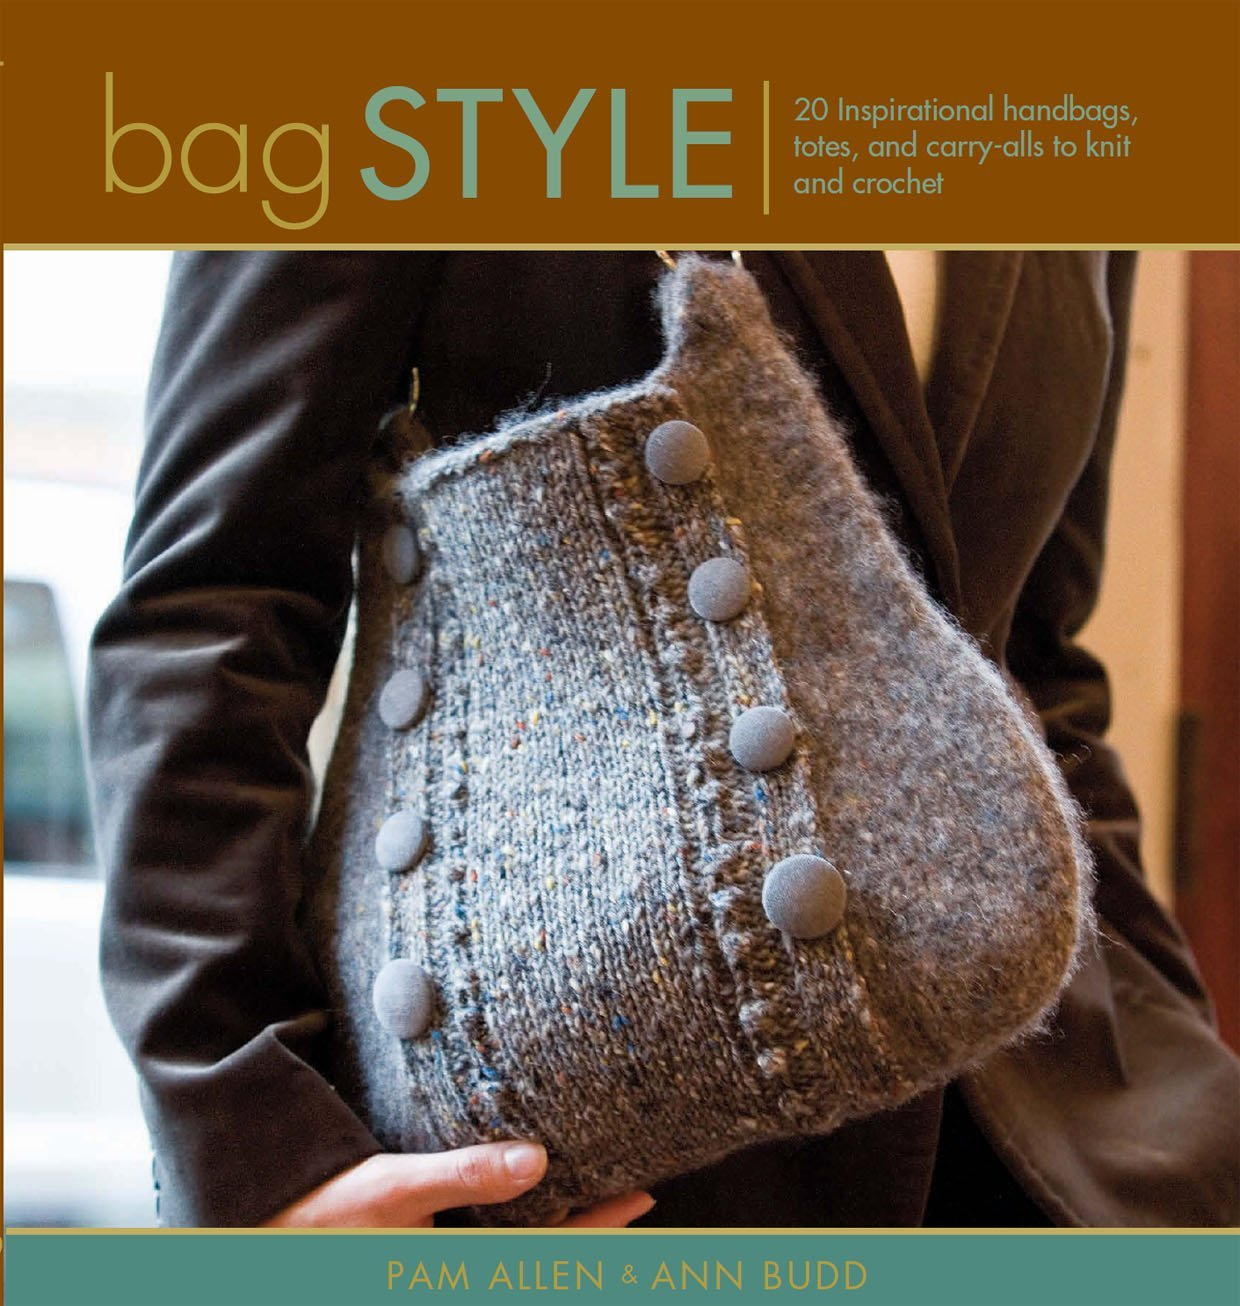 Bag Style: 20 Inspirational Handbags, Totes, and Caryy-Alls to Knit and Crochet